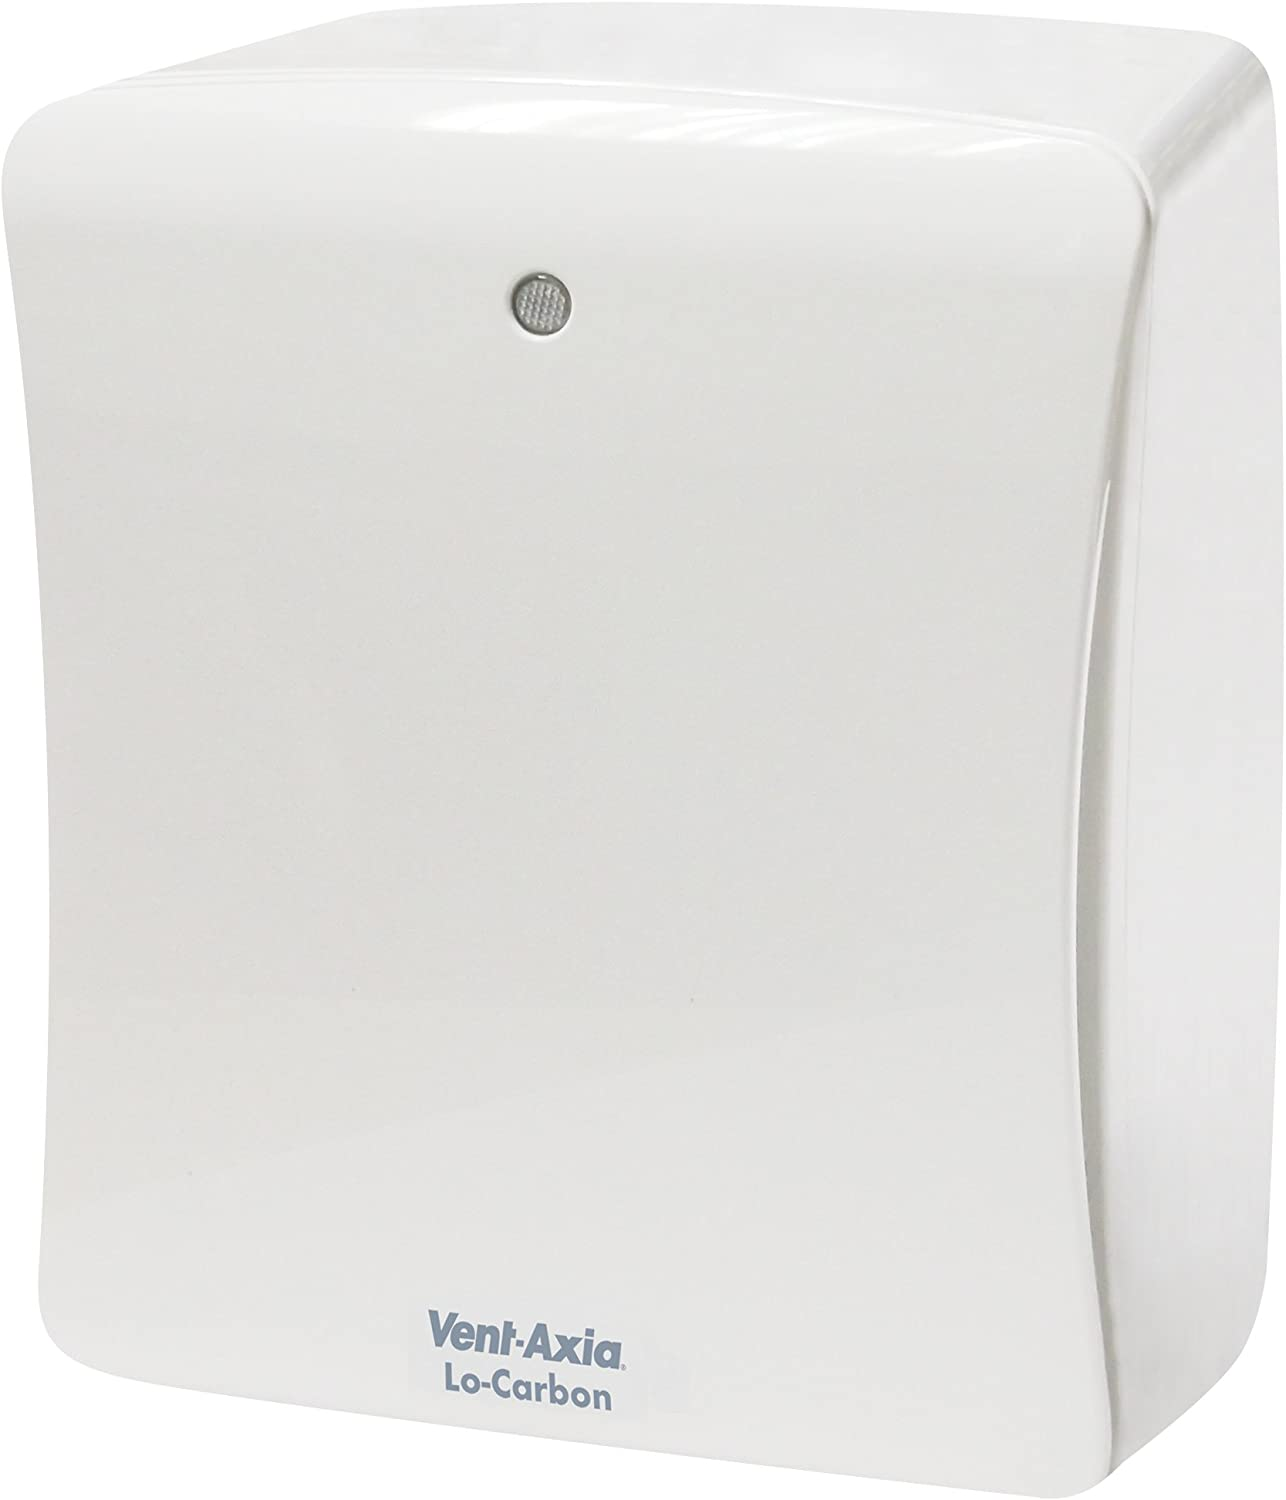 Vent-Axia 427481 Lo-Carbon Solo Plus Centrifugal Bathroom and Toilet Fan with Pullcord